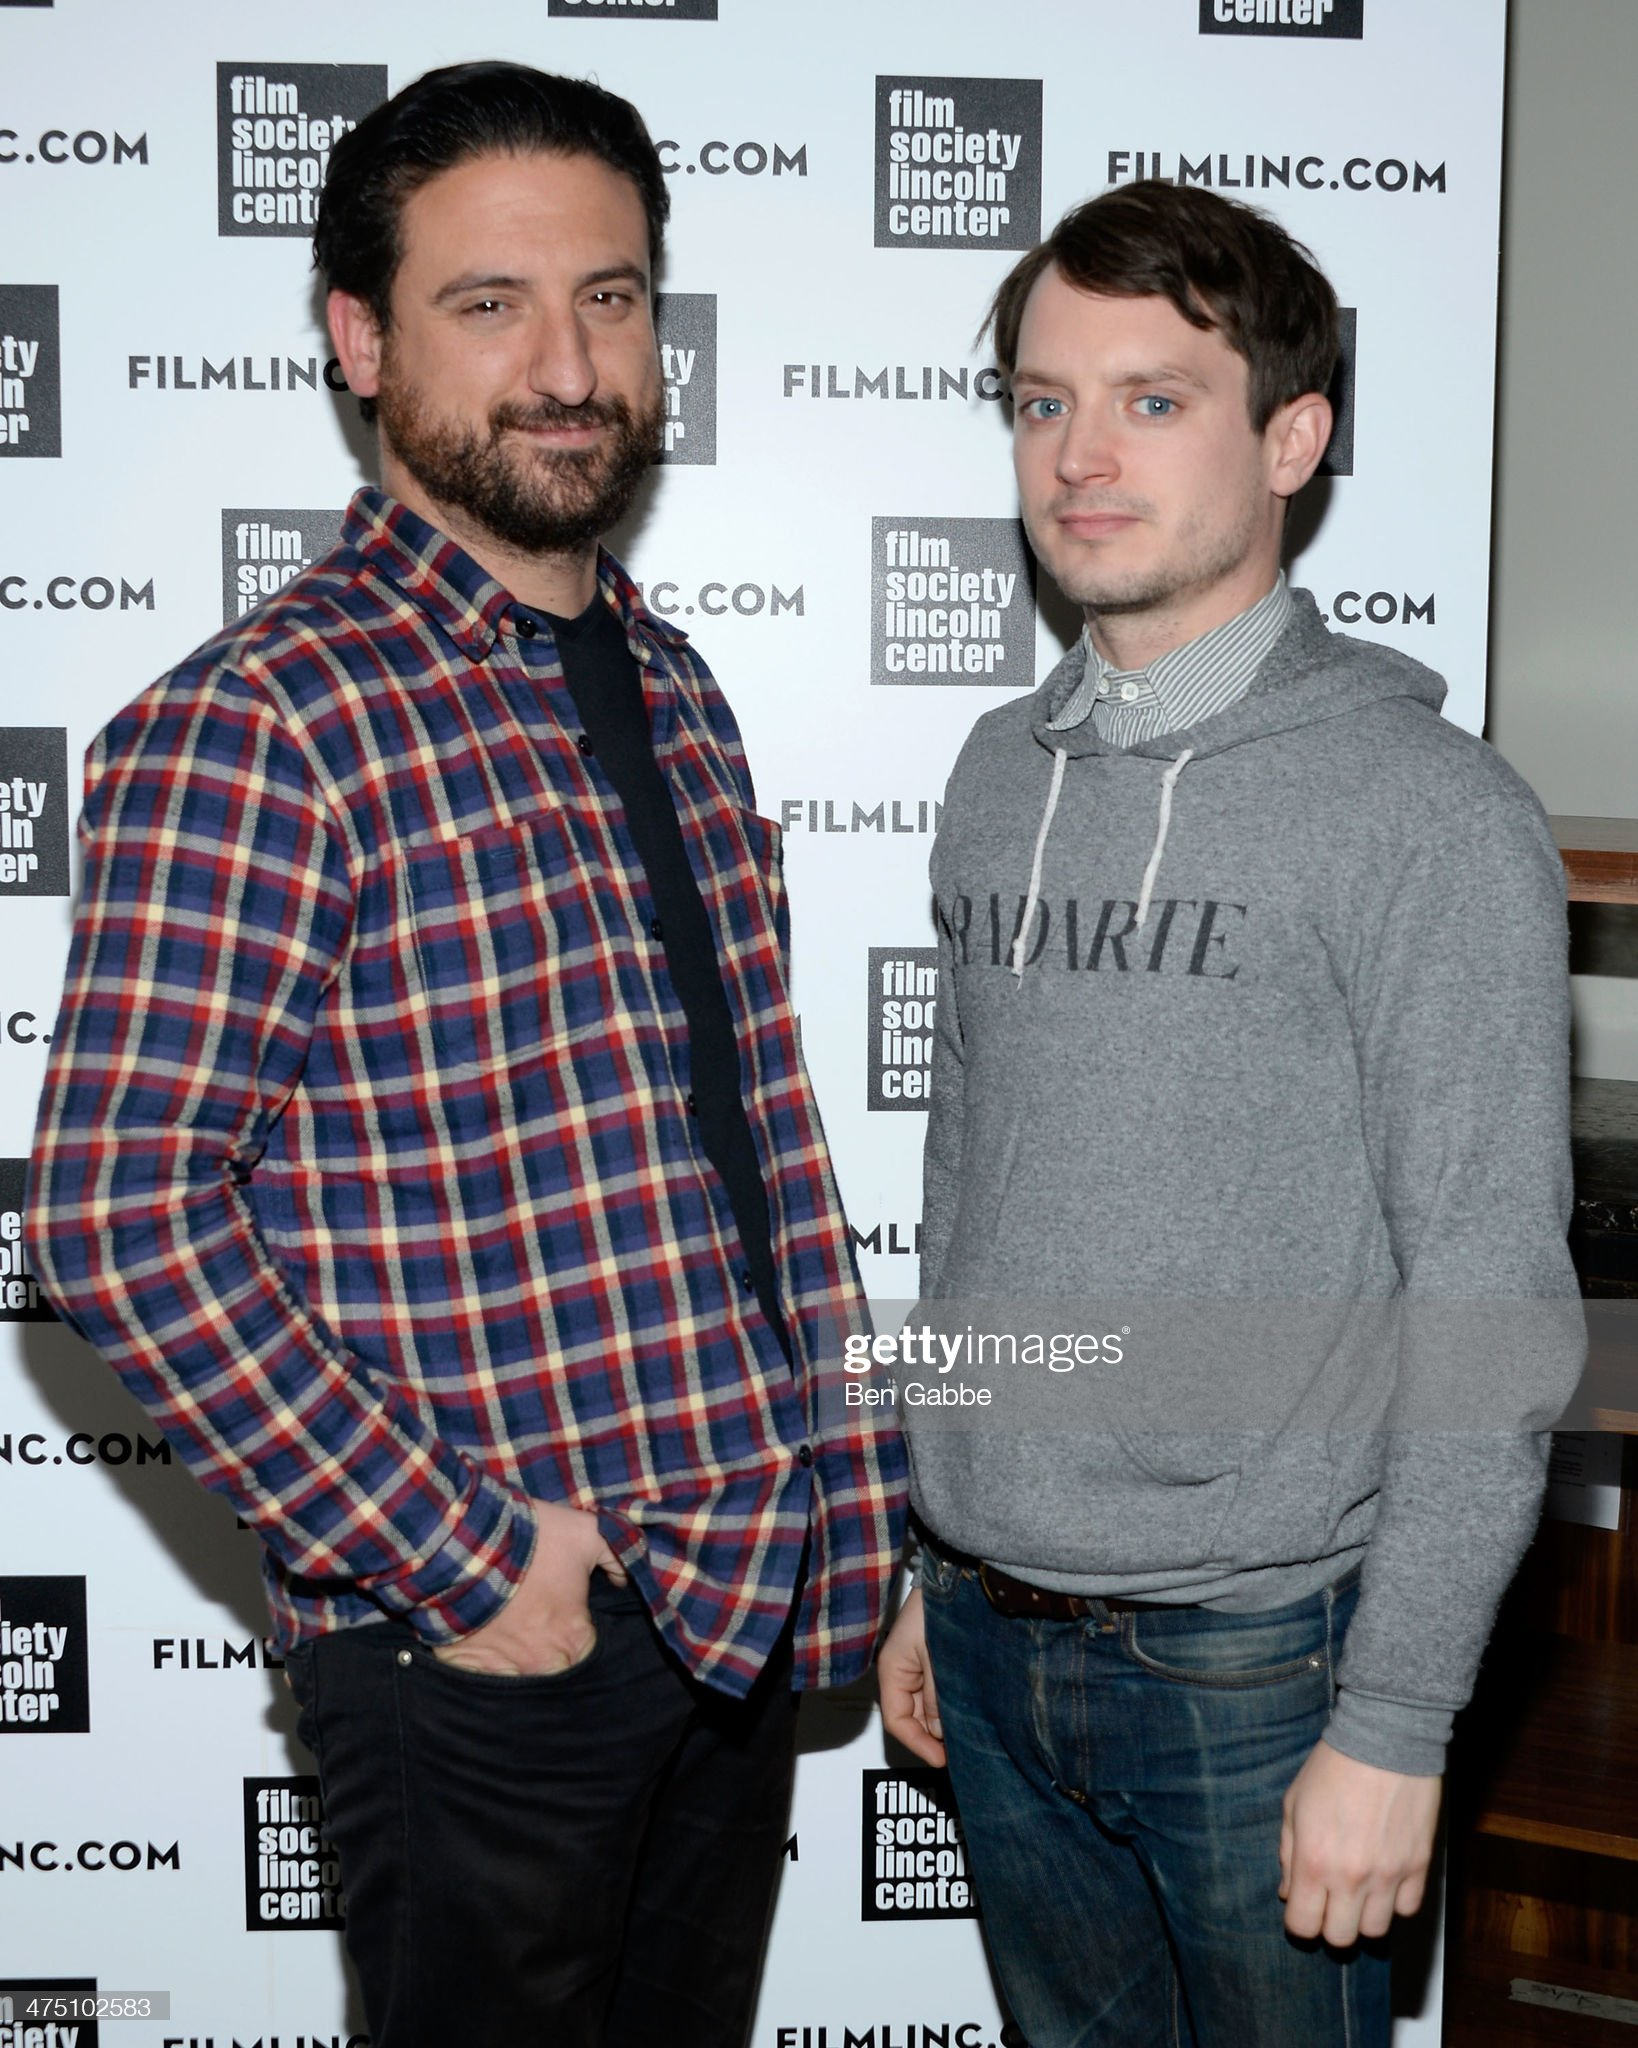 ¿Cuánto mide Eugenio Mira? - Altura Director-eugenio-mira-and-actor-elijah-wood-attend-the-film-society-picture-id475102583?s=2048x2048